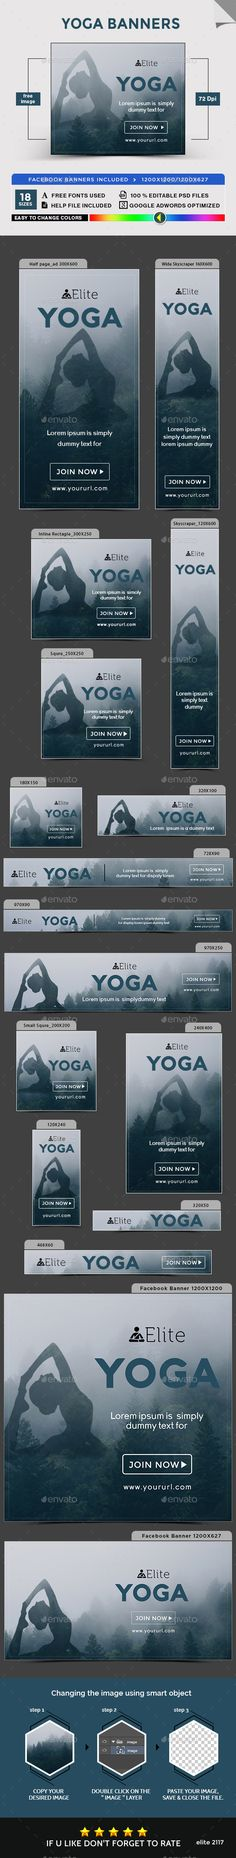 Yoga Banners - Banners & Ads Web Elements Download here : https://graphicriver.net/item/yoga-banners/19380046?s_rank=94&ref=Al-fatih